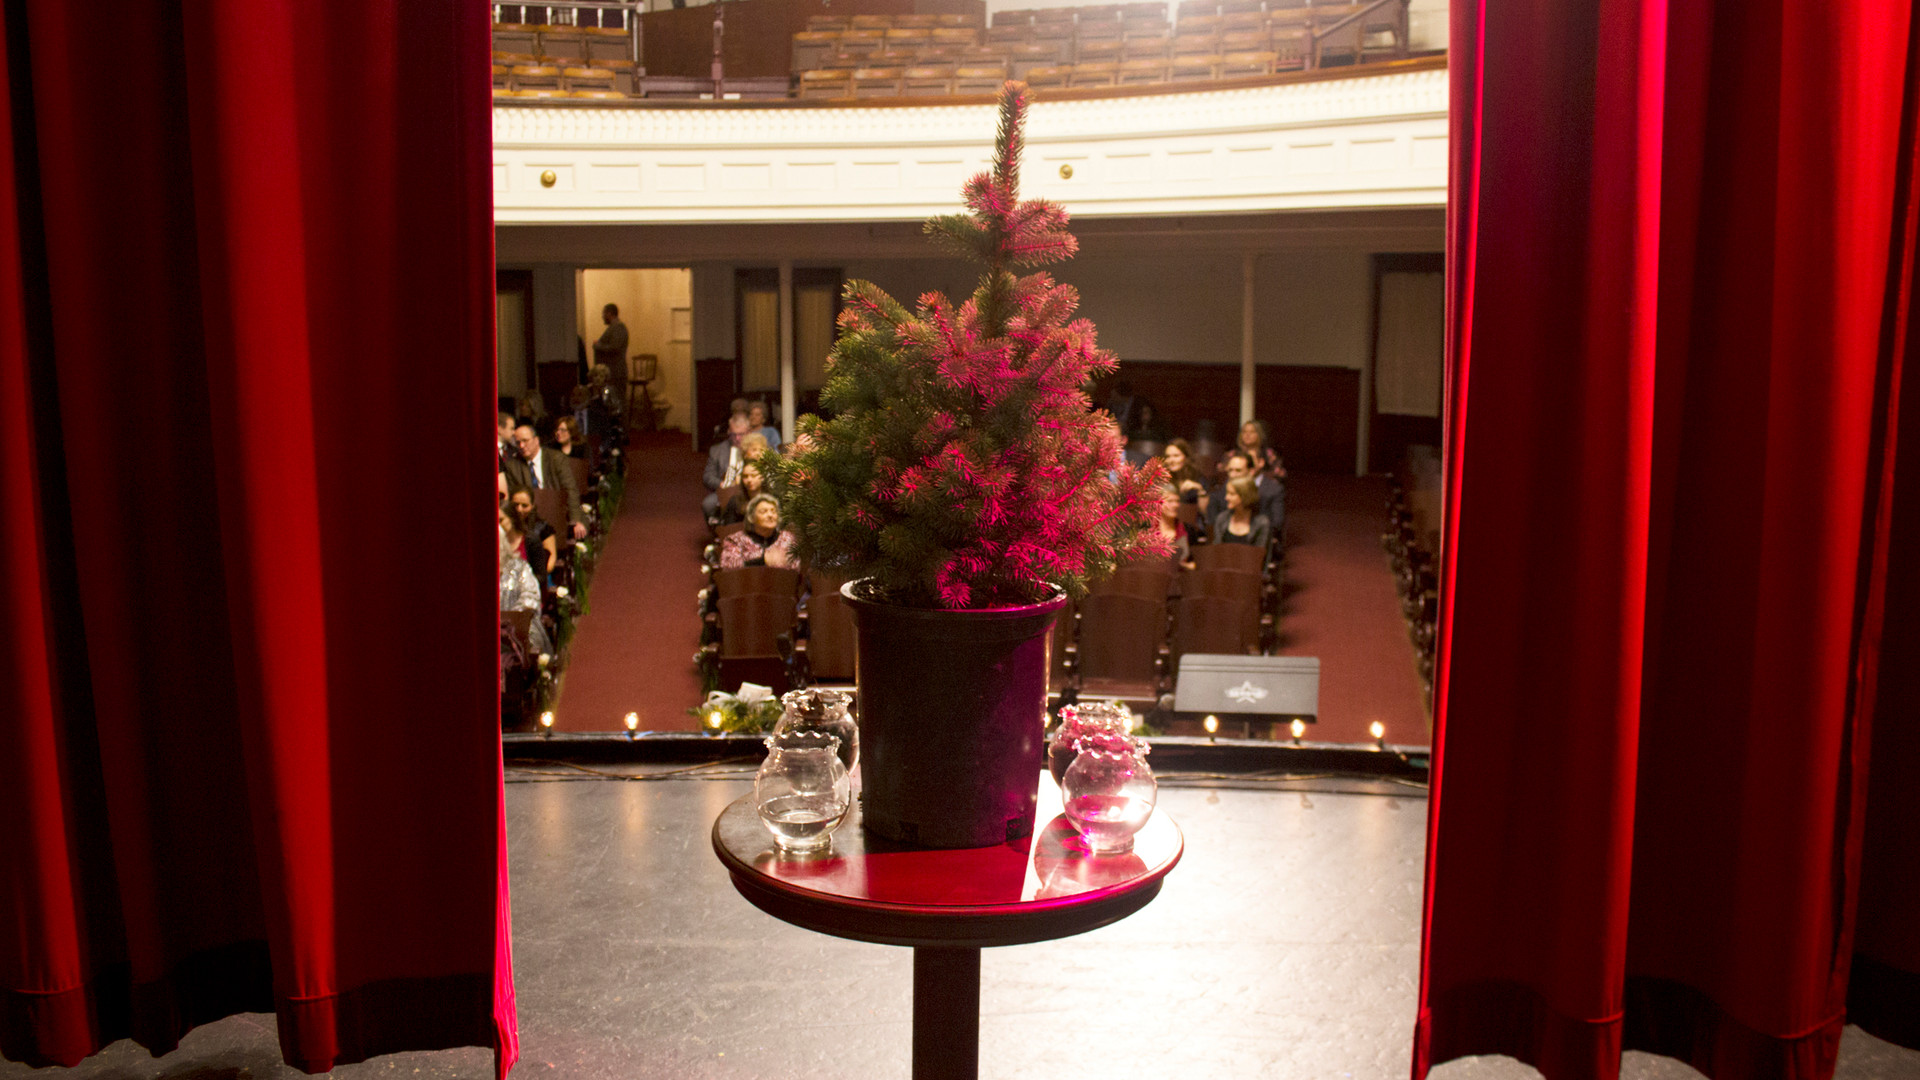 Palaia Theater stage view